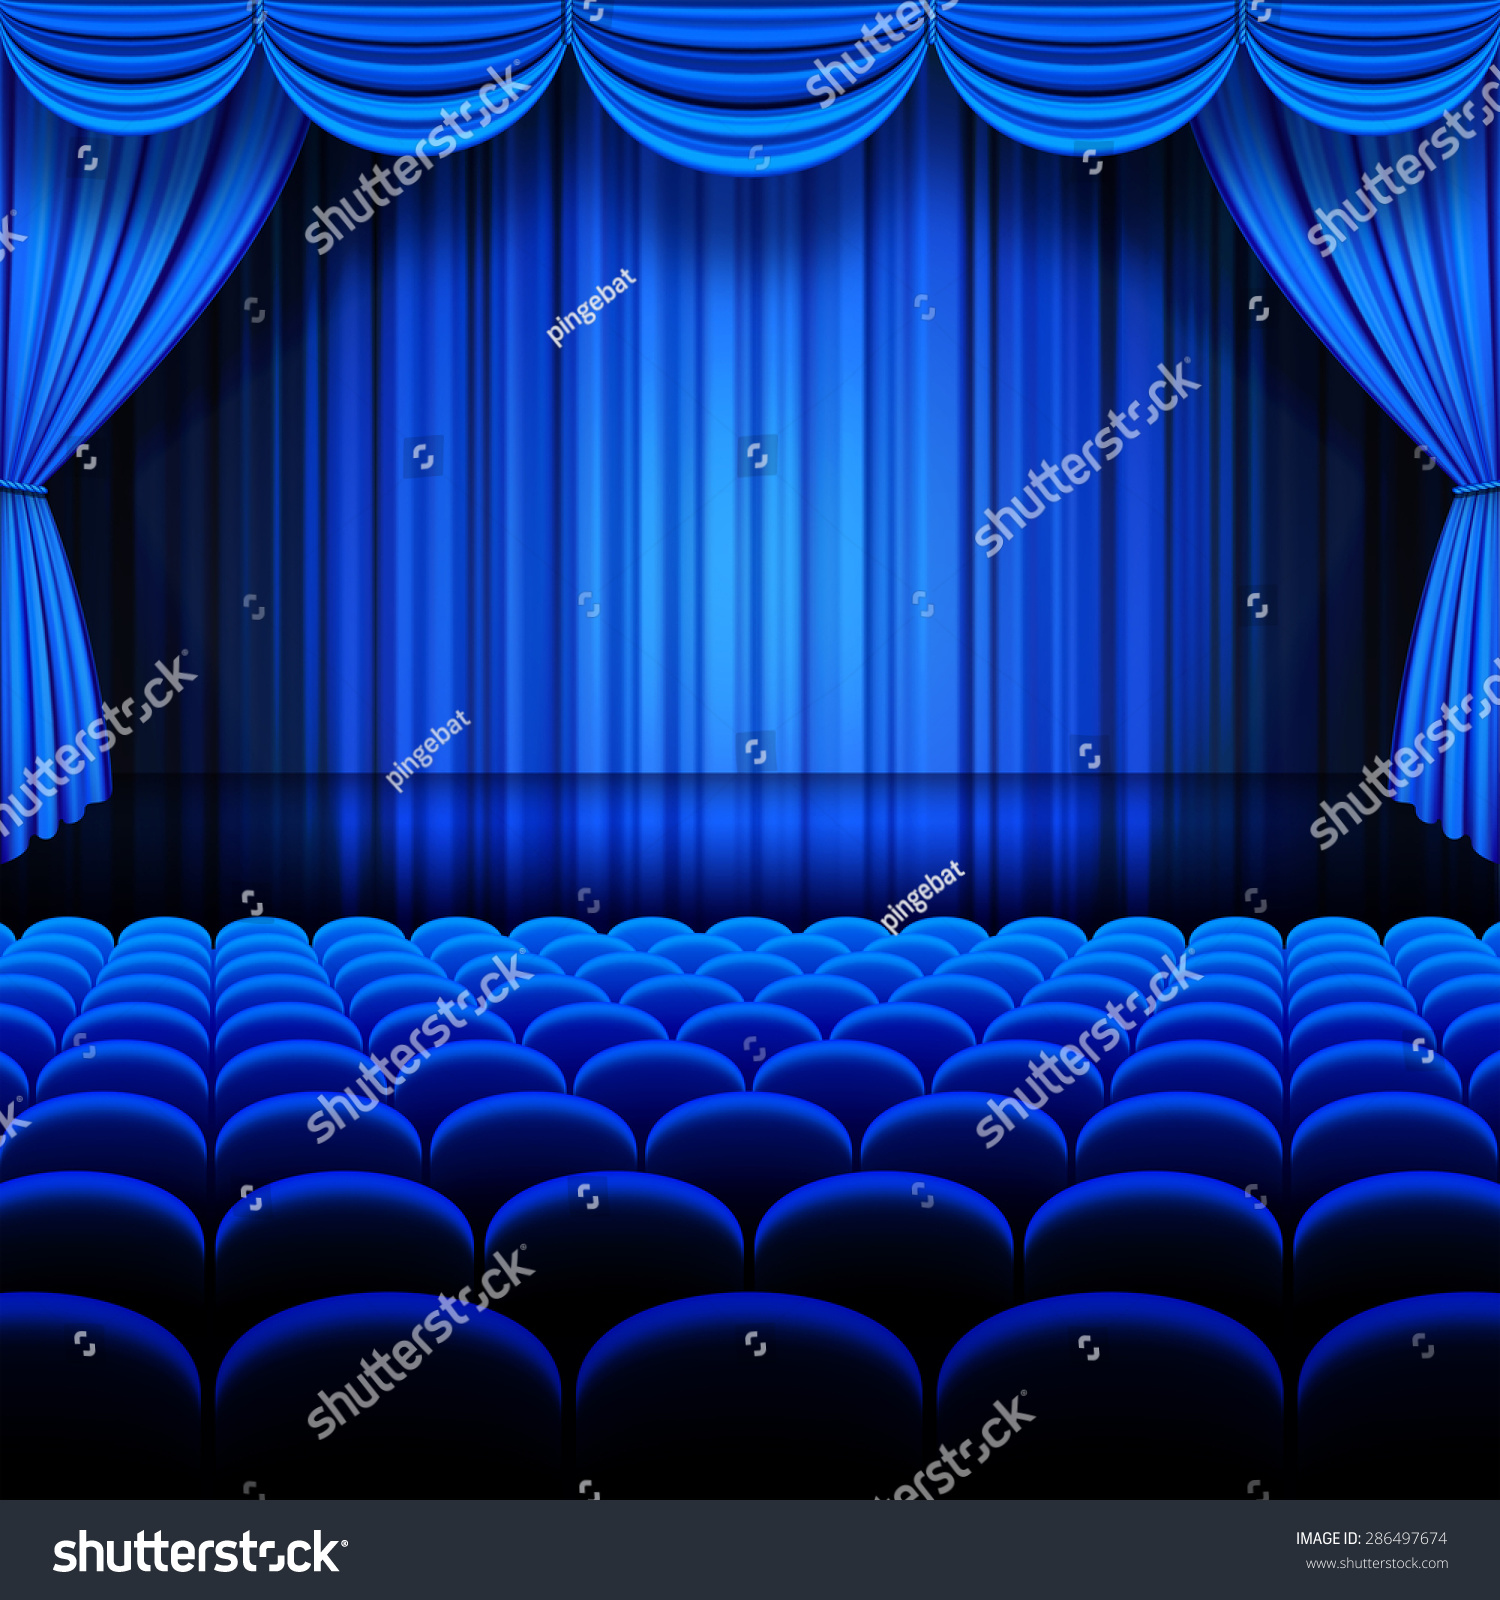 Blue stage curtains blue stage curtain vector free vector in - A Vector Illustrations Of A Theater Stage With Blue Full Stage Curtains